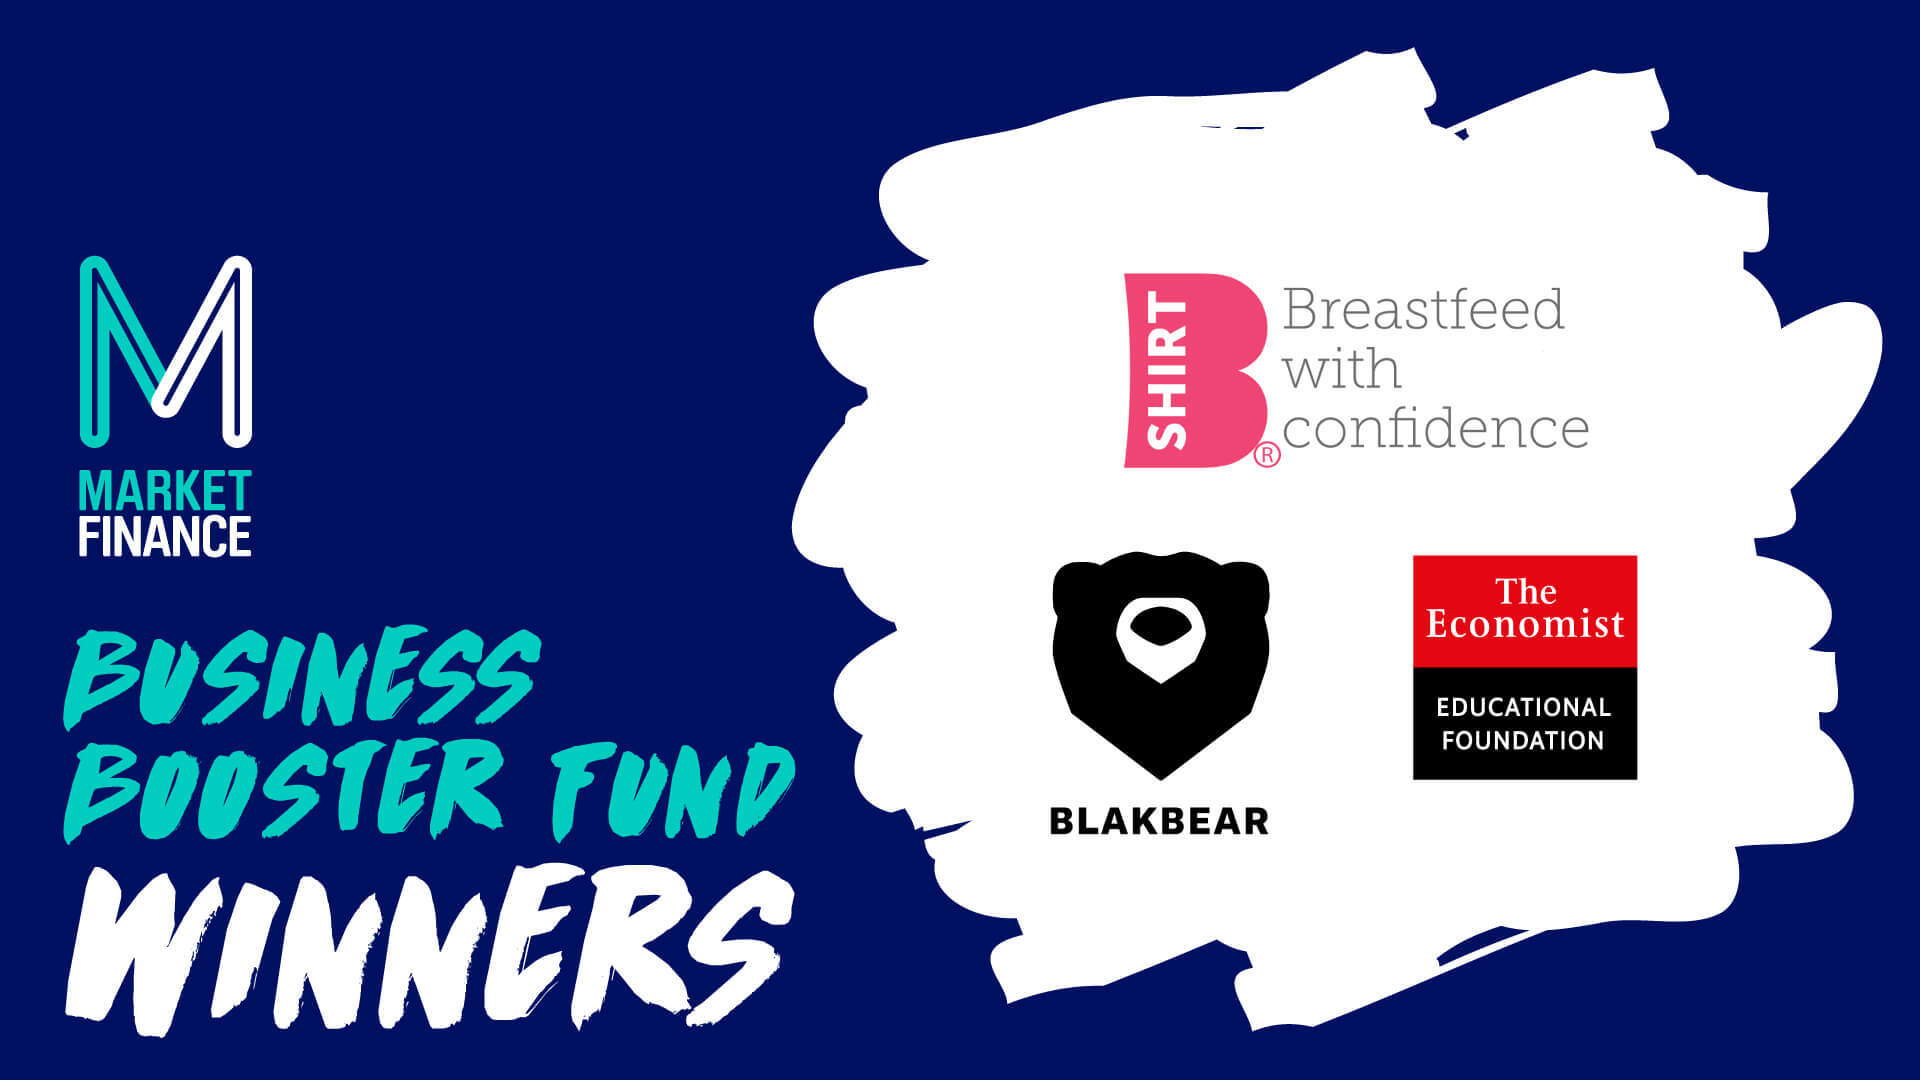 Here are the WINNERS of our Business Booster Fund